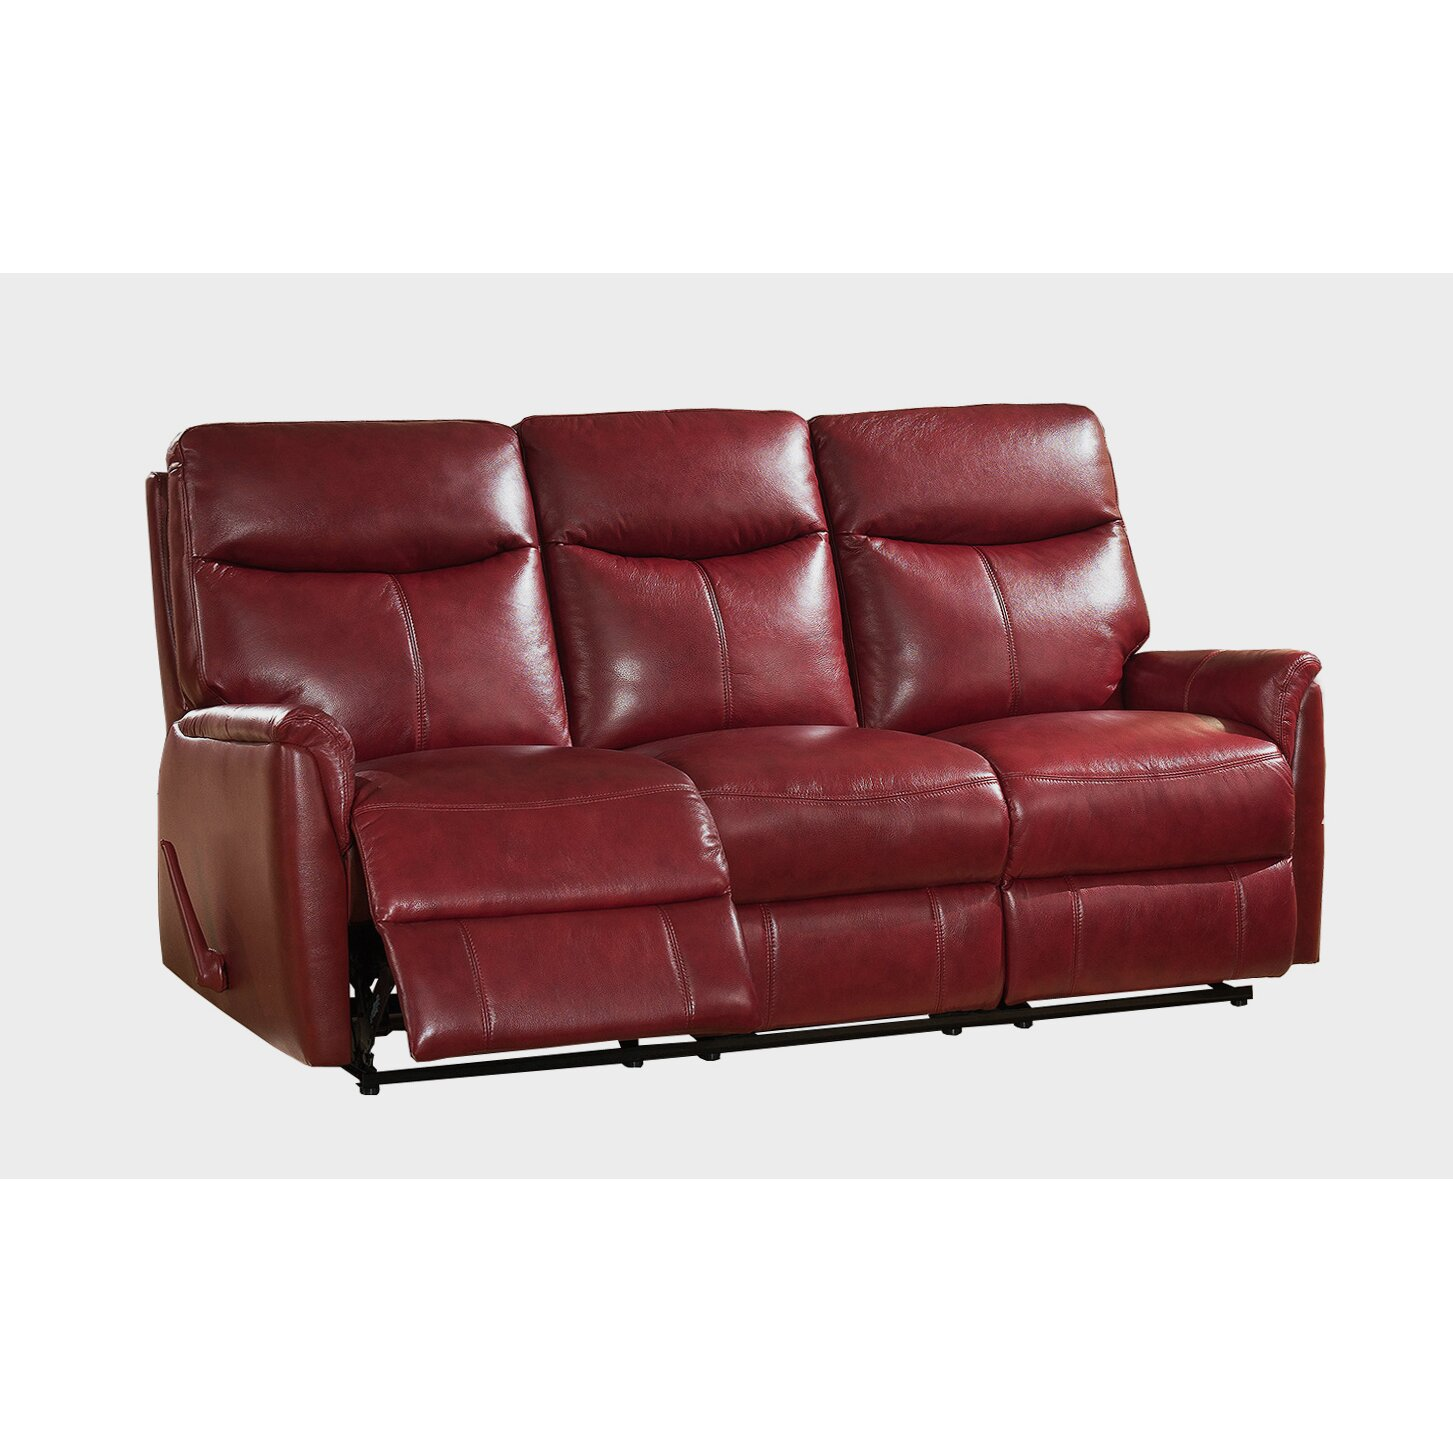 Amax napa top grain leather lay flat reclining sofa and loveseat set wayfair Leather reclining sofa loveseat